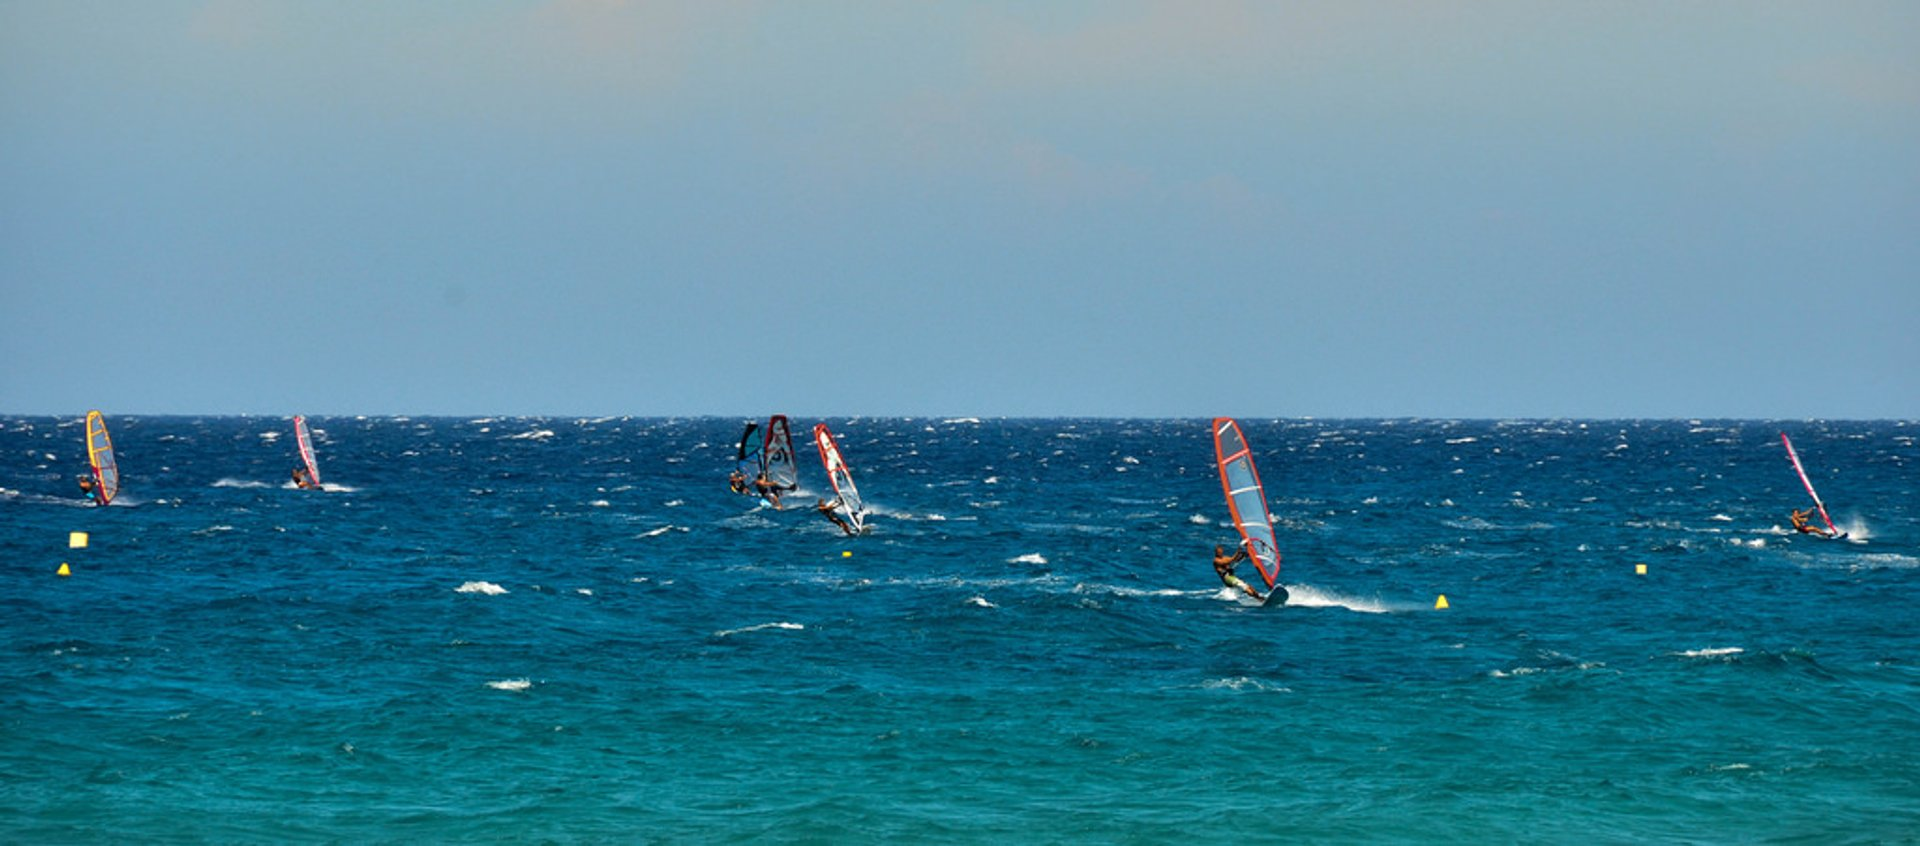 Best time to see Kite and Windsurfing in Corsica 2020